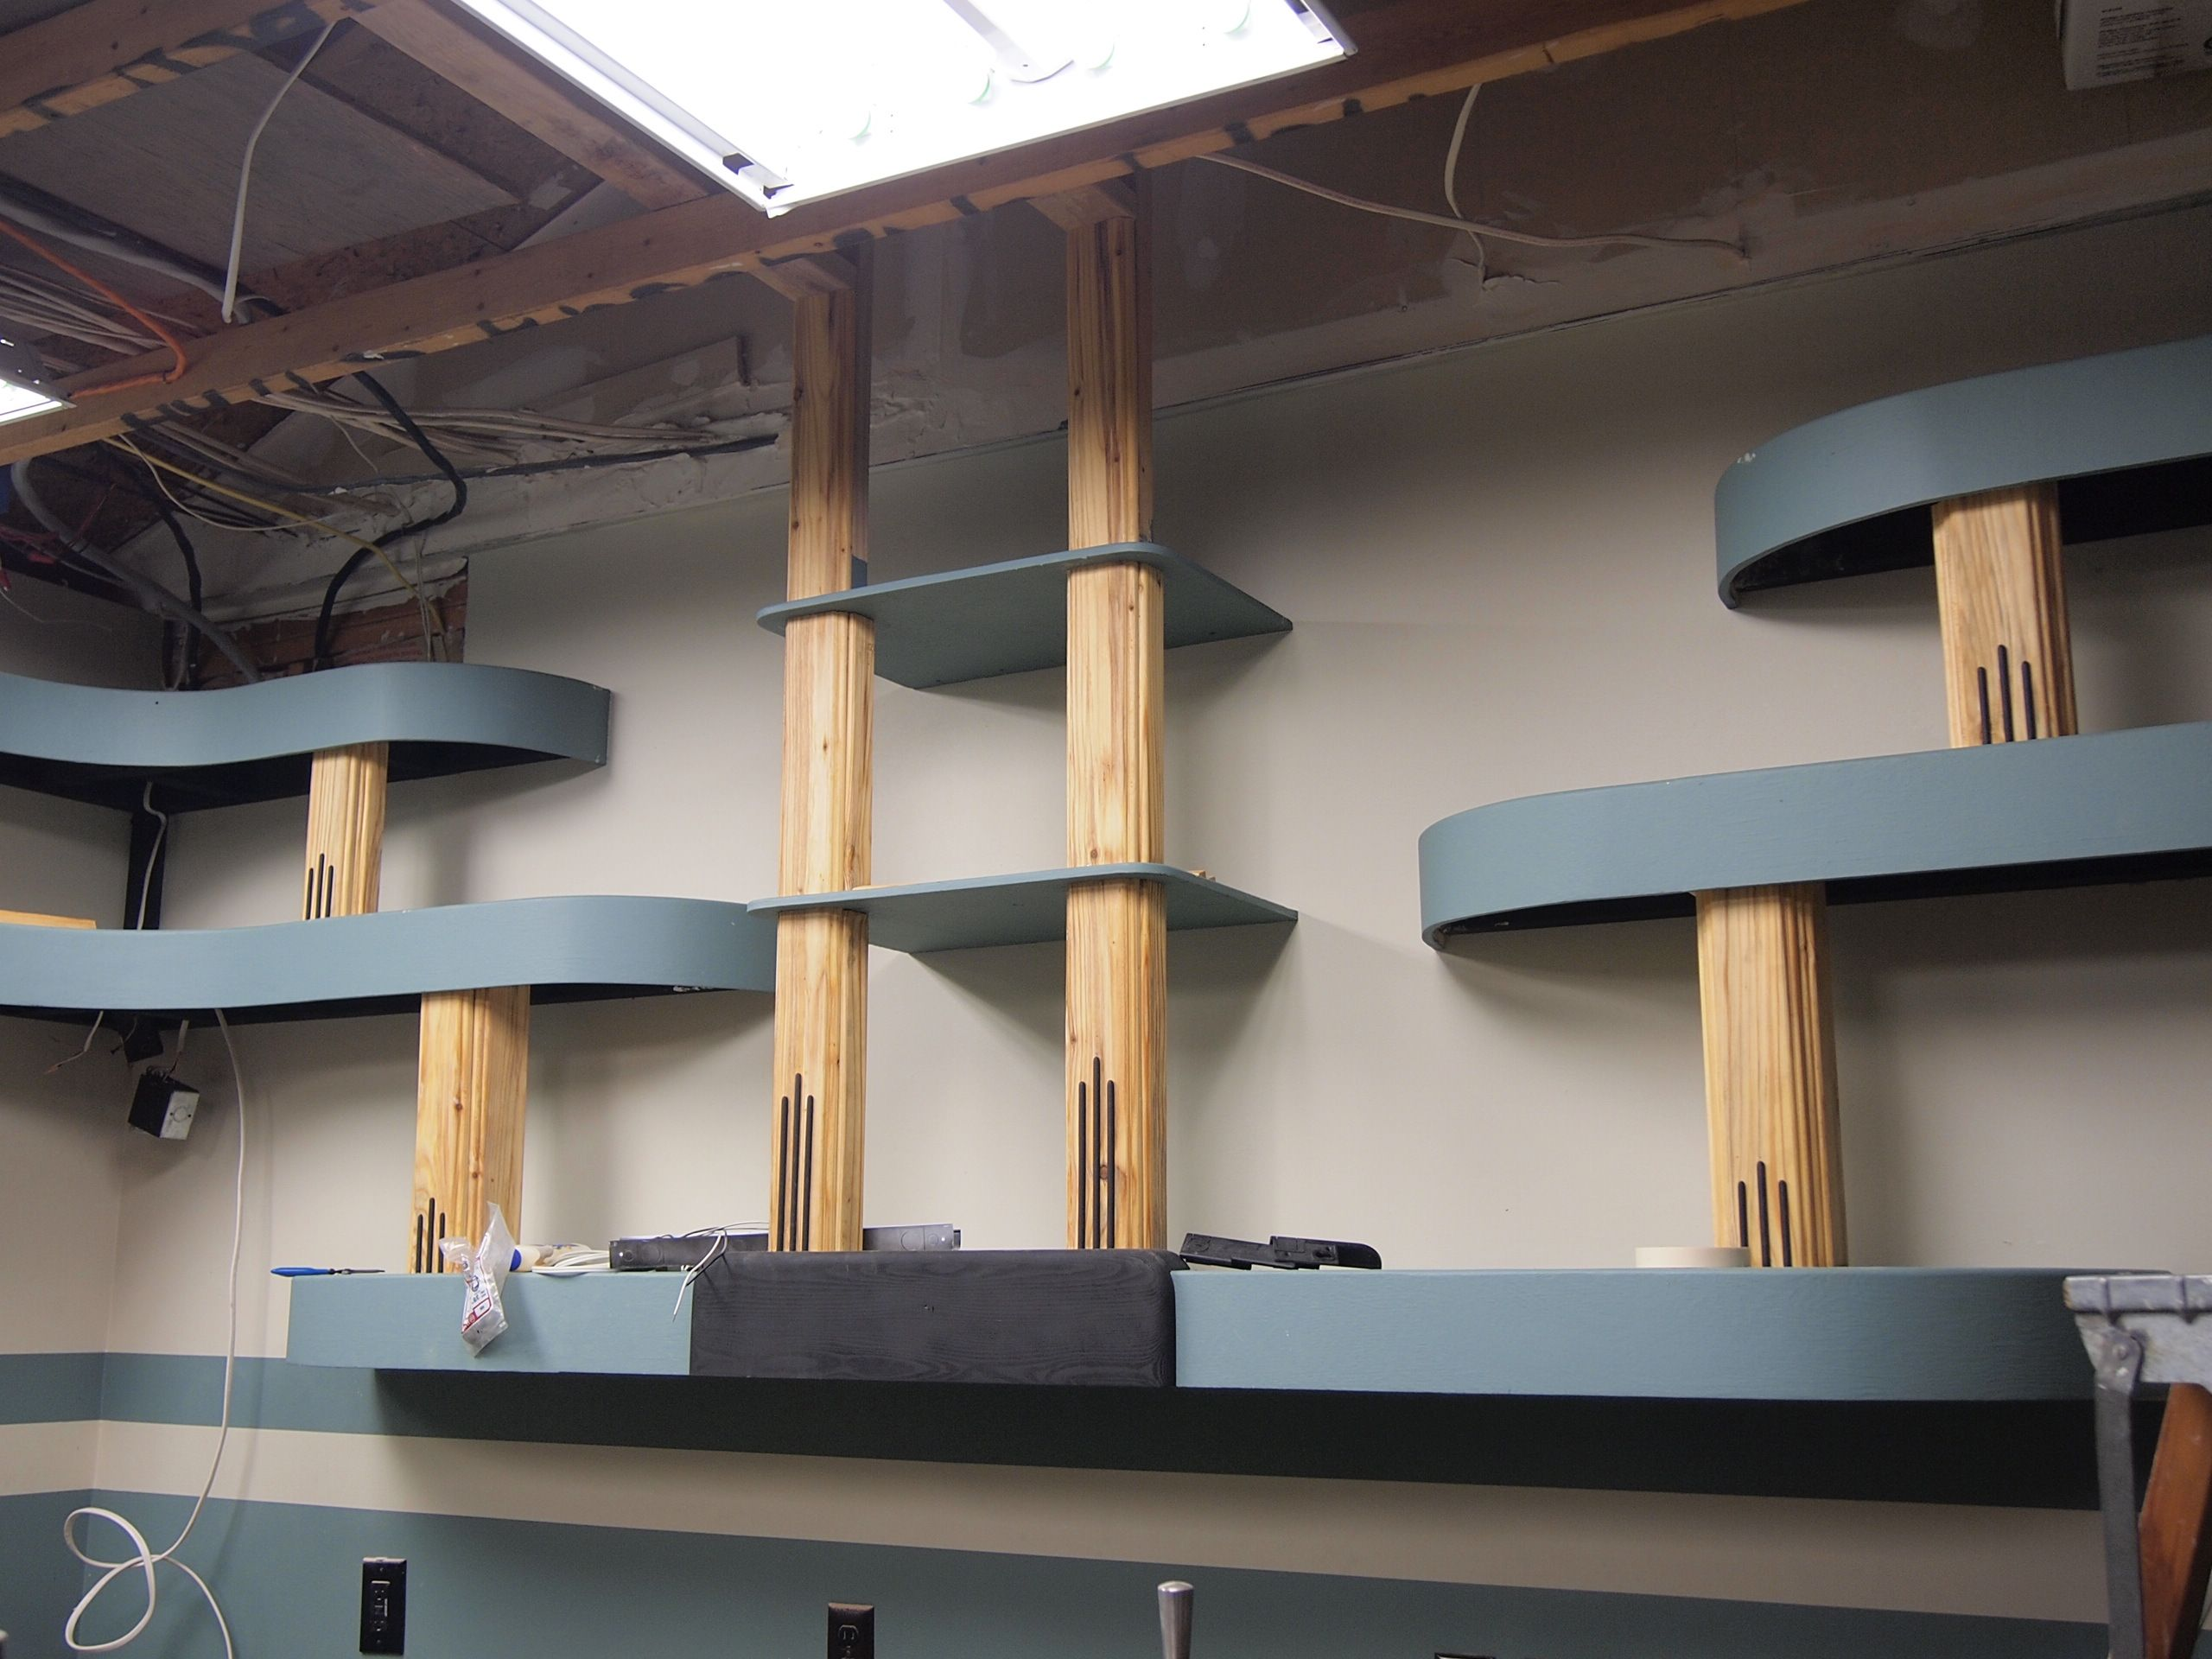 To Buy Or Build Workbench And Cabinets? [Archive]   The Garage Journal Board